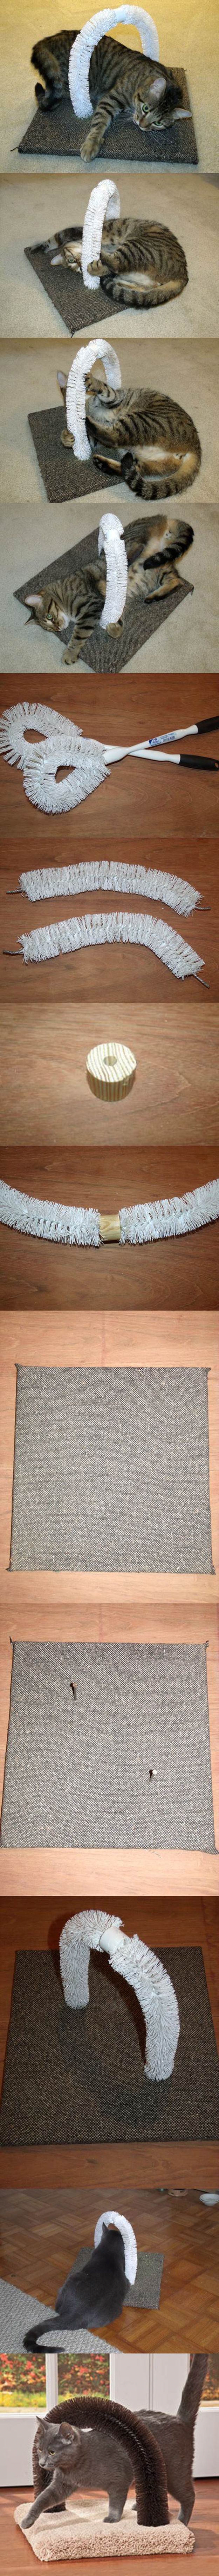 Easy DIY Cat Scratcher   Self-Petting Station for Cats by DIY Ready http://diyready.com/best-diy-pet-projects-to-keep-your-furry-friends-happy/